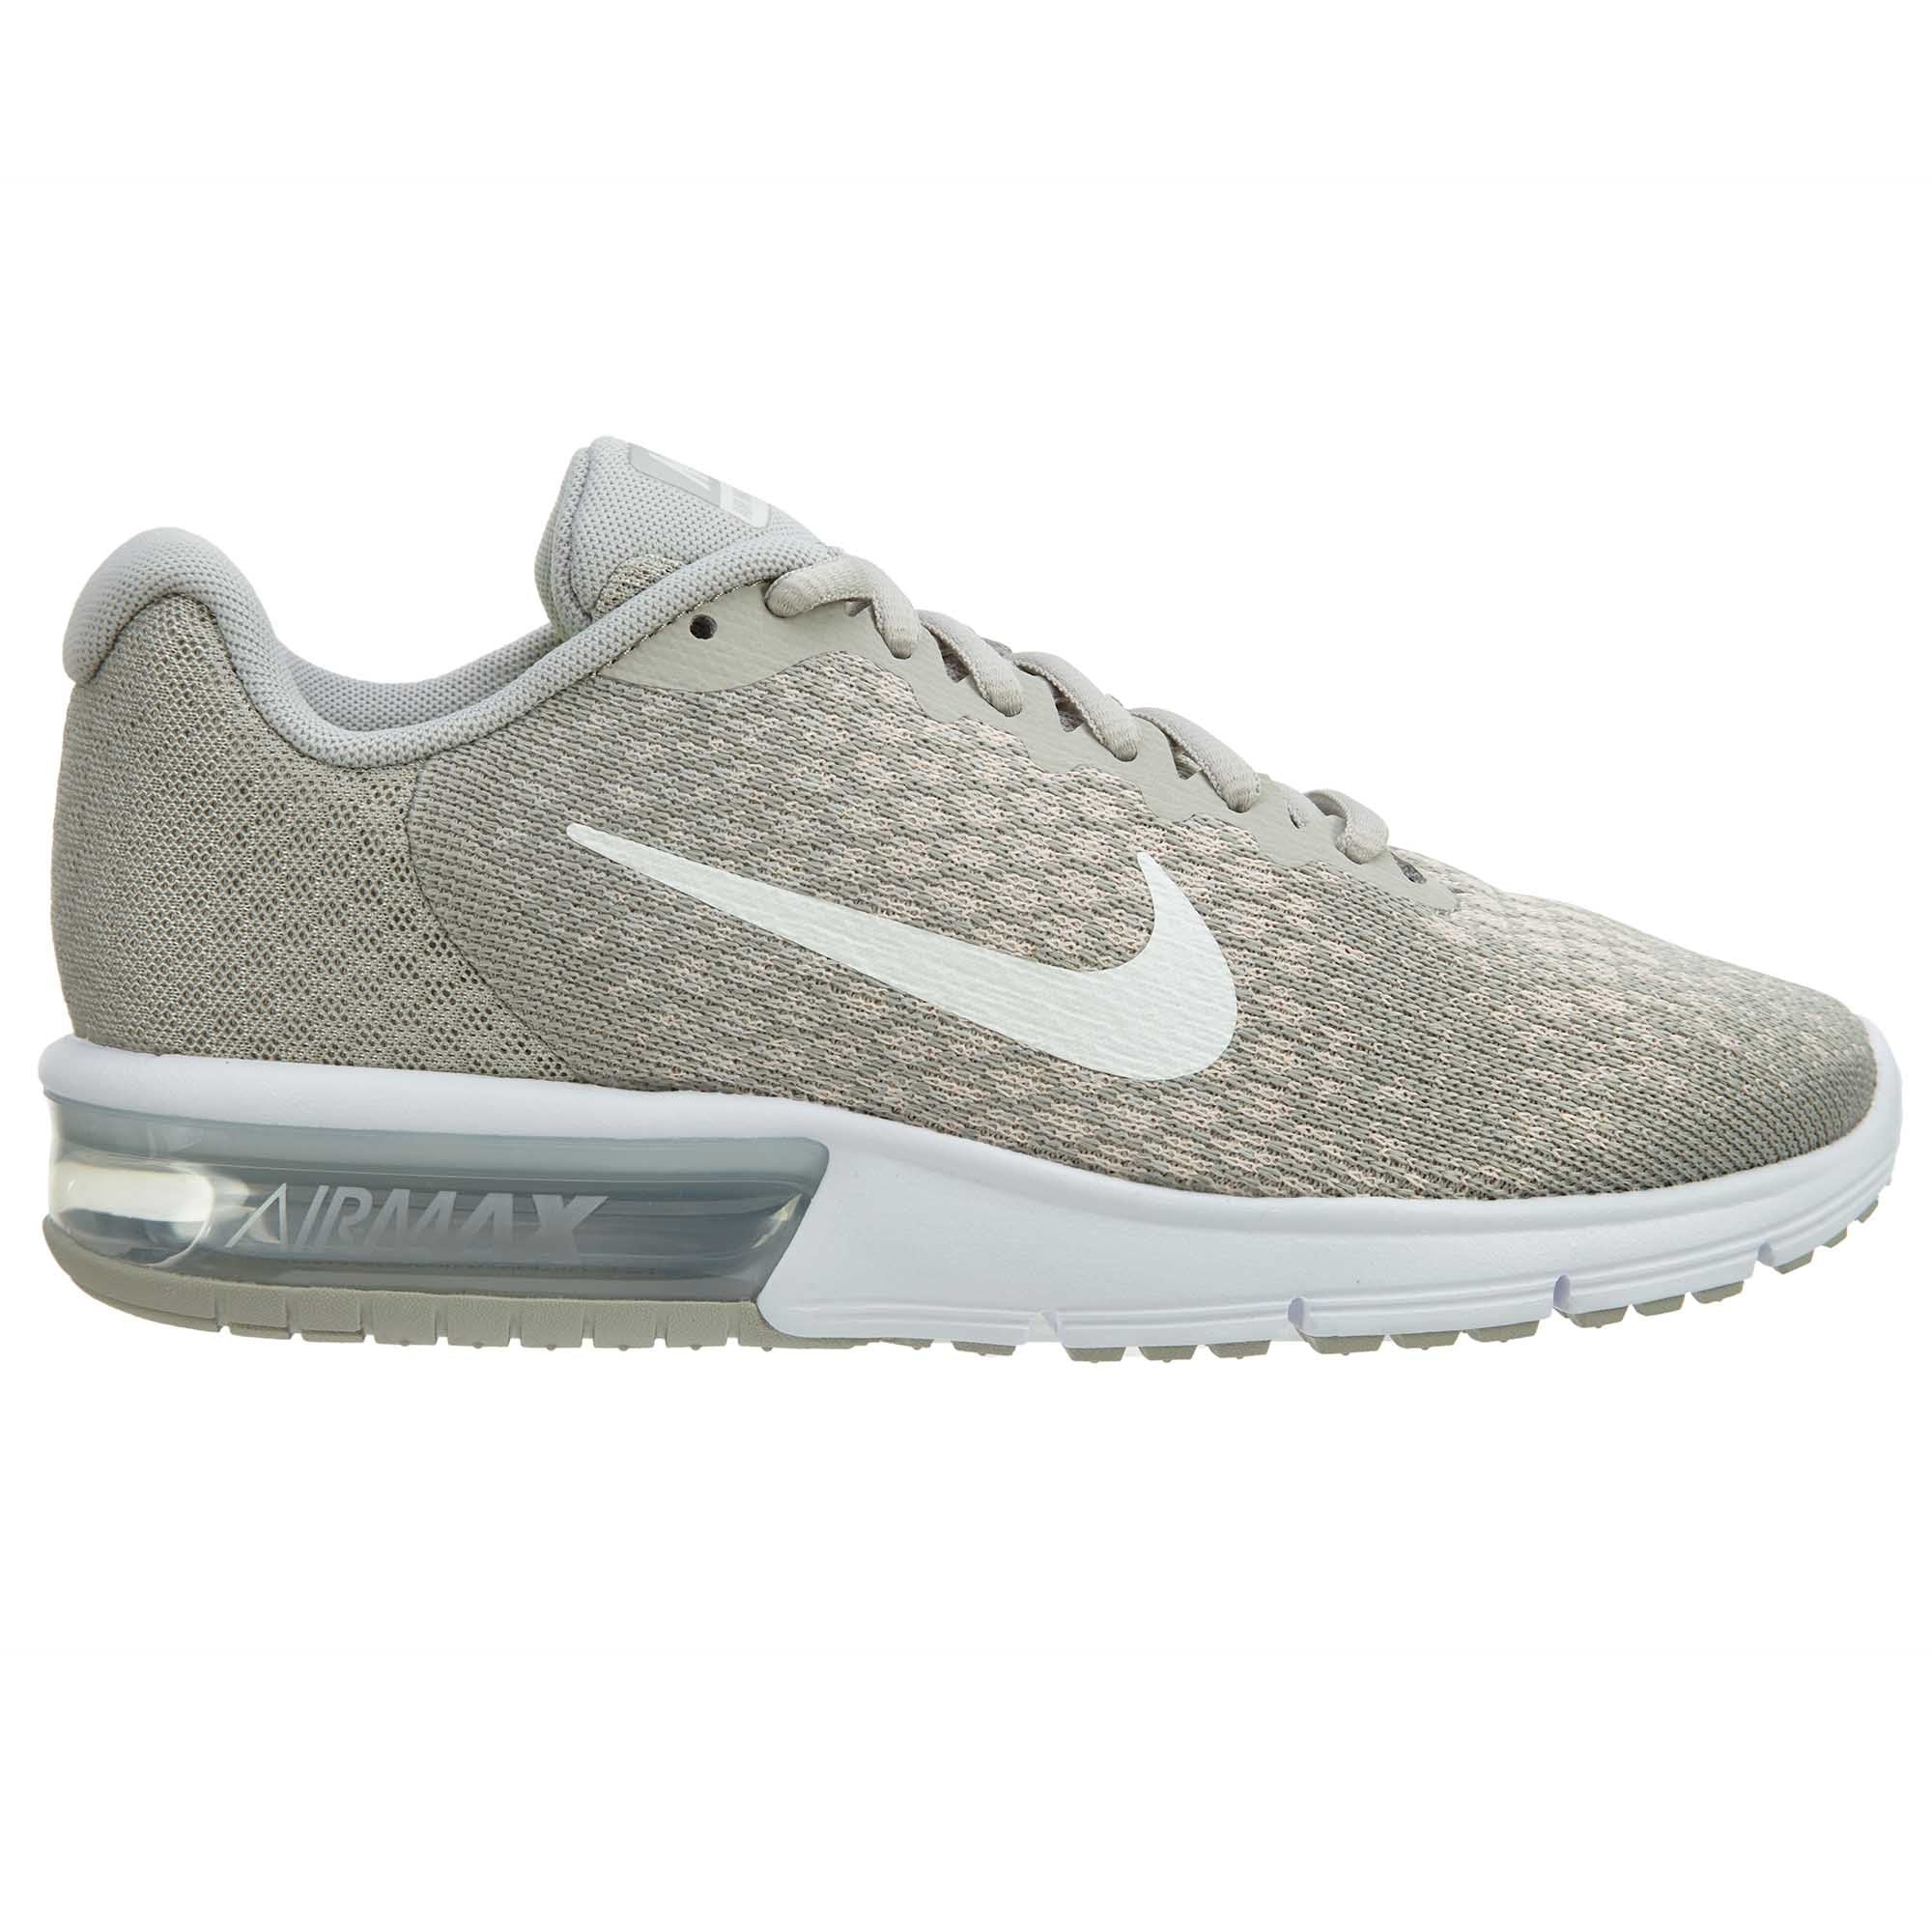 43413a4500 Nike Air Max Sequent 2 Womens Style : 852465